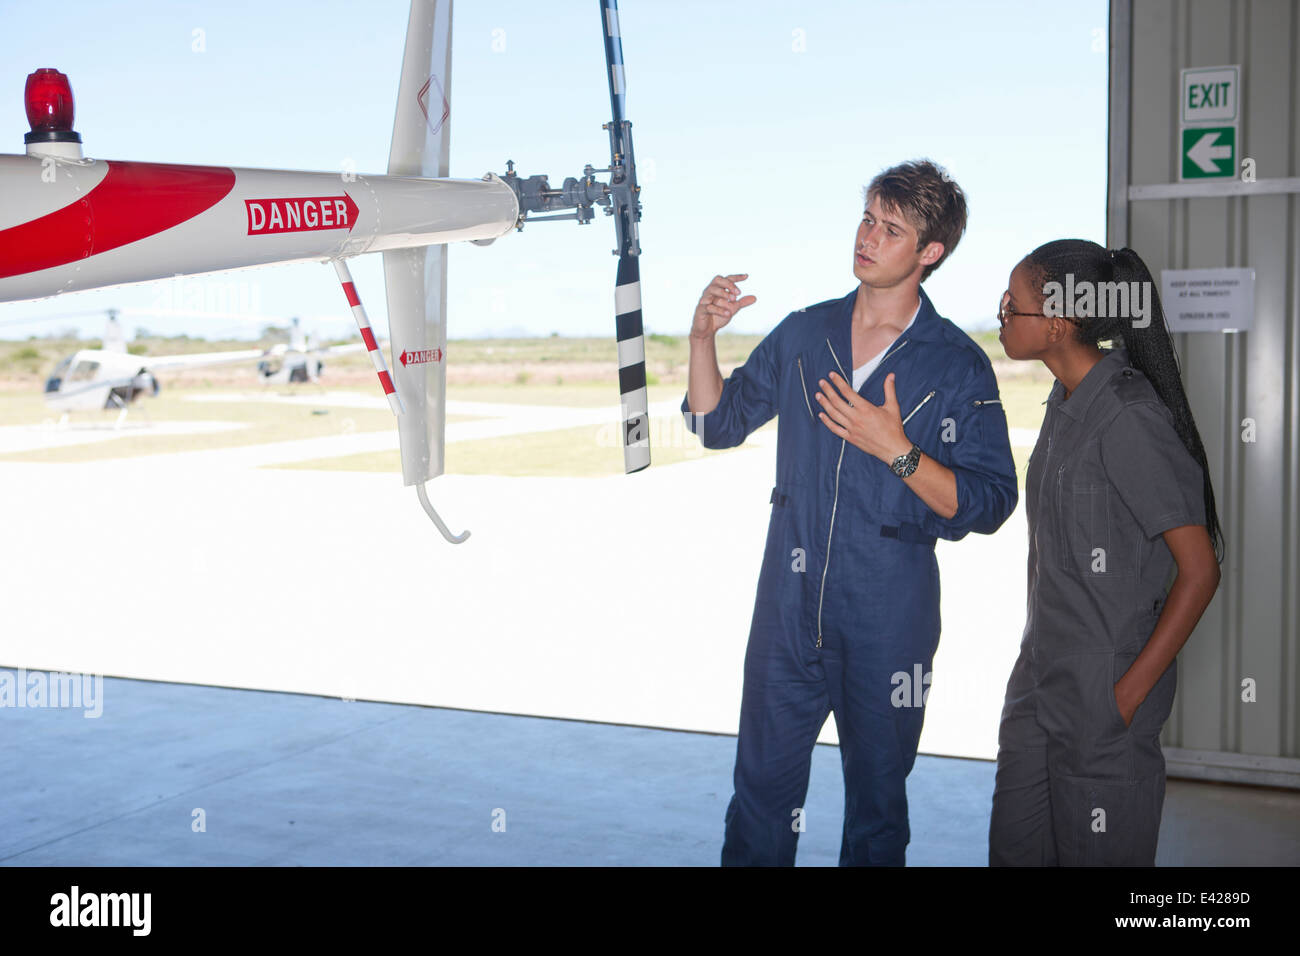 Student pilots sharing helicopter knowledge - Stock Image